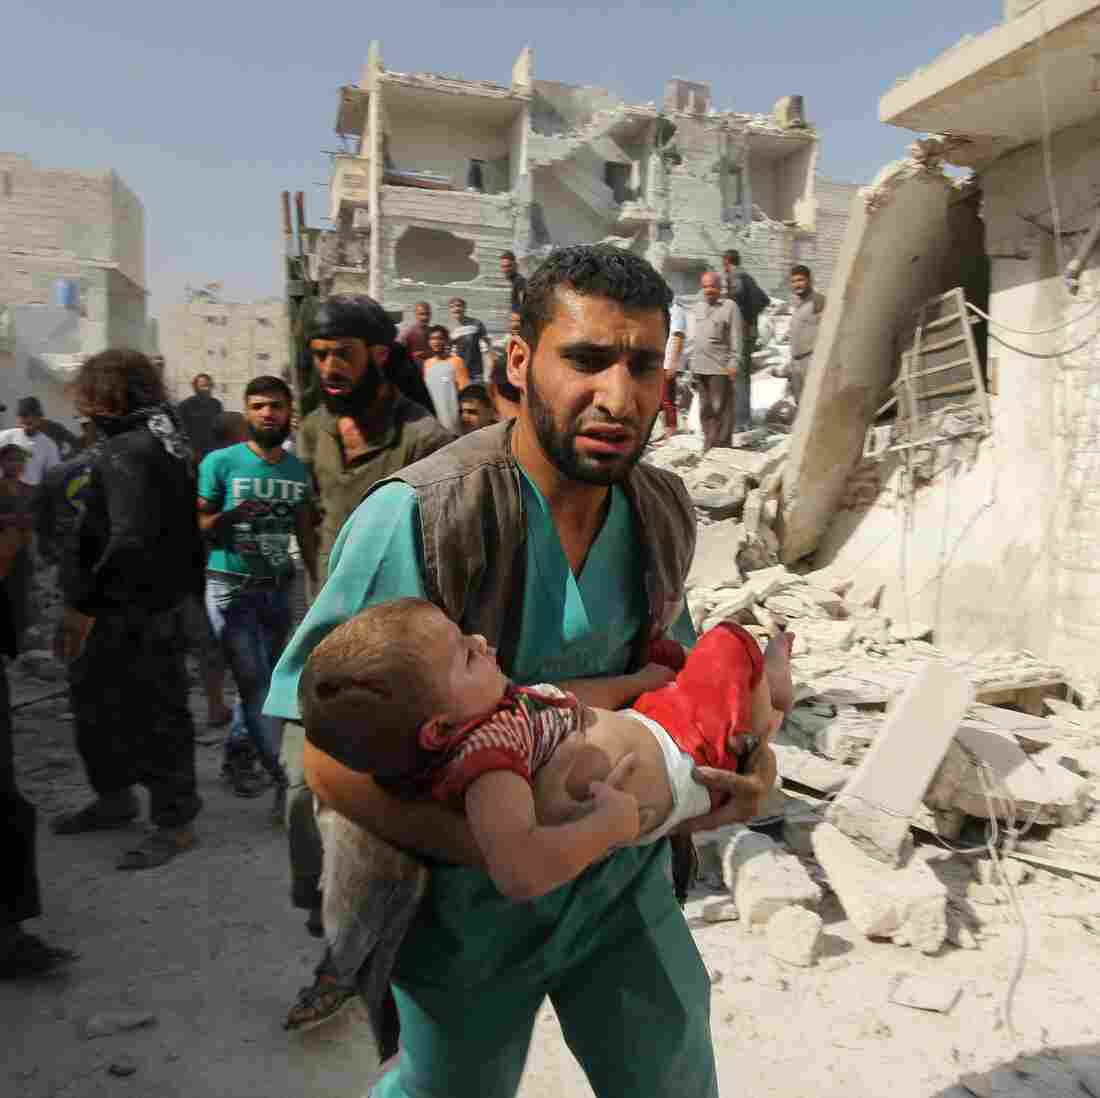 A first responder in the rebel-held city of Aleppo carries a child who was wounded in a government airstrike on Sept. 16.